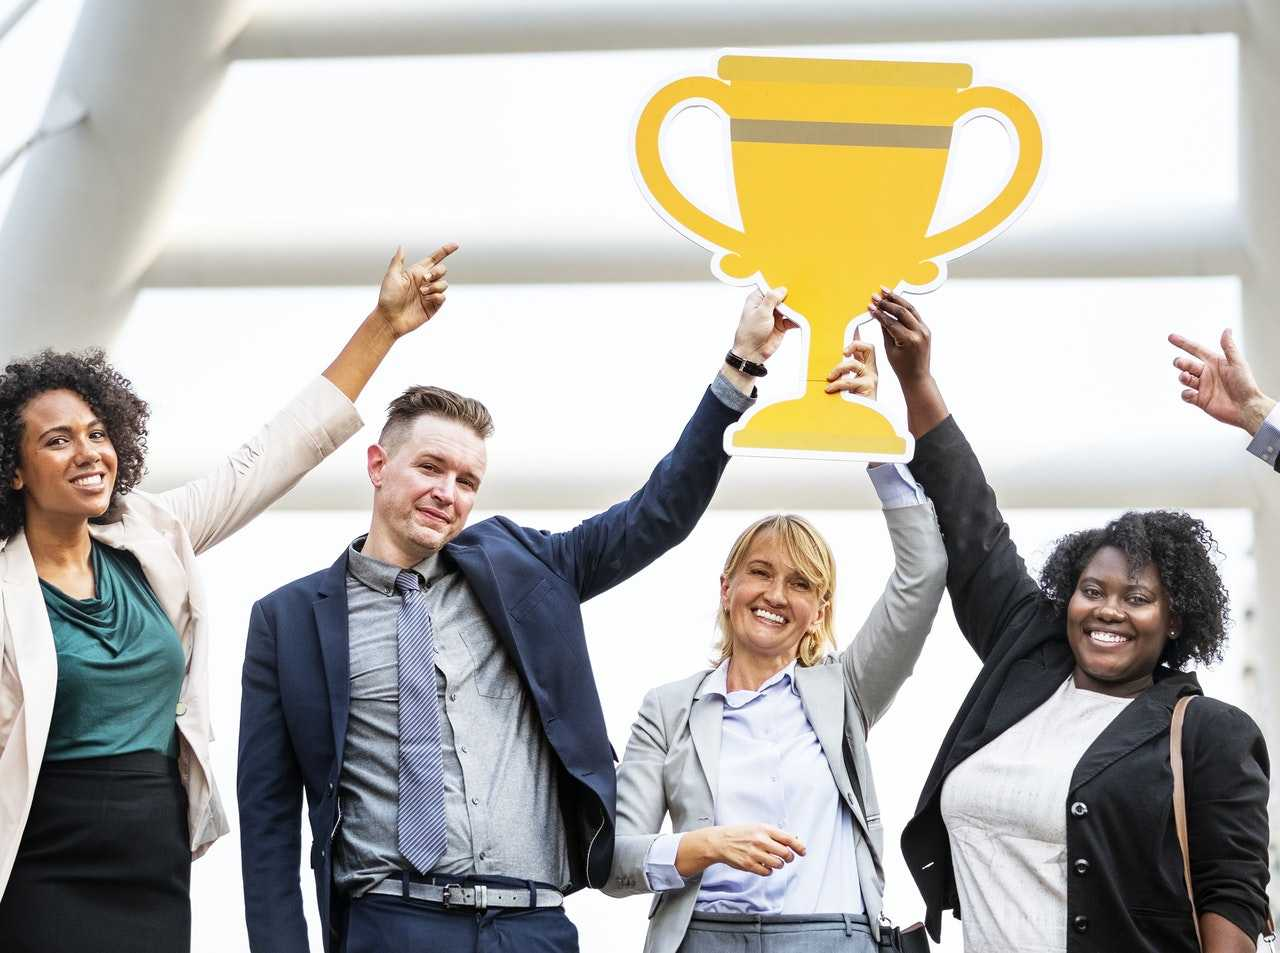 Show your employee appreciation with a custom office trophy for those big wins!